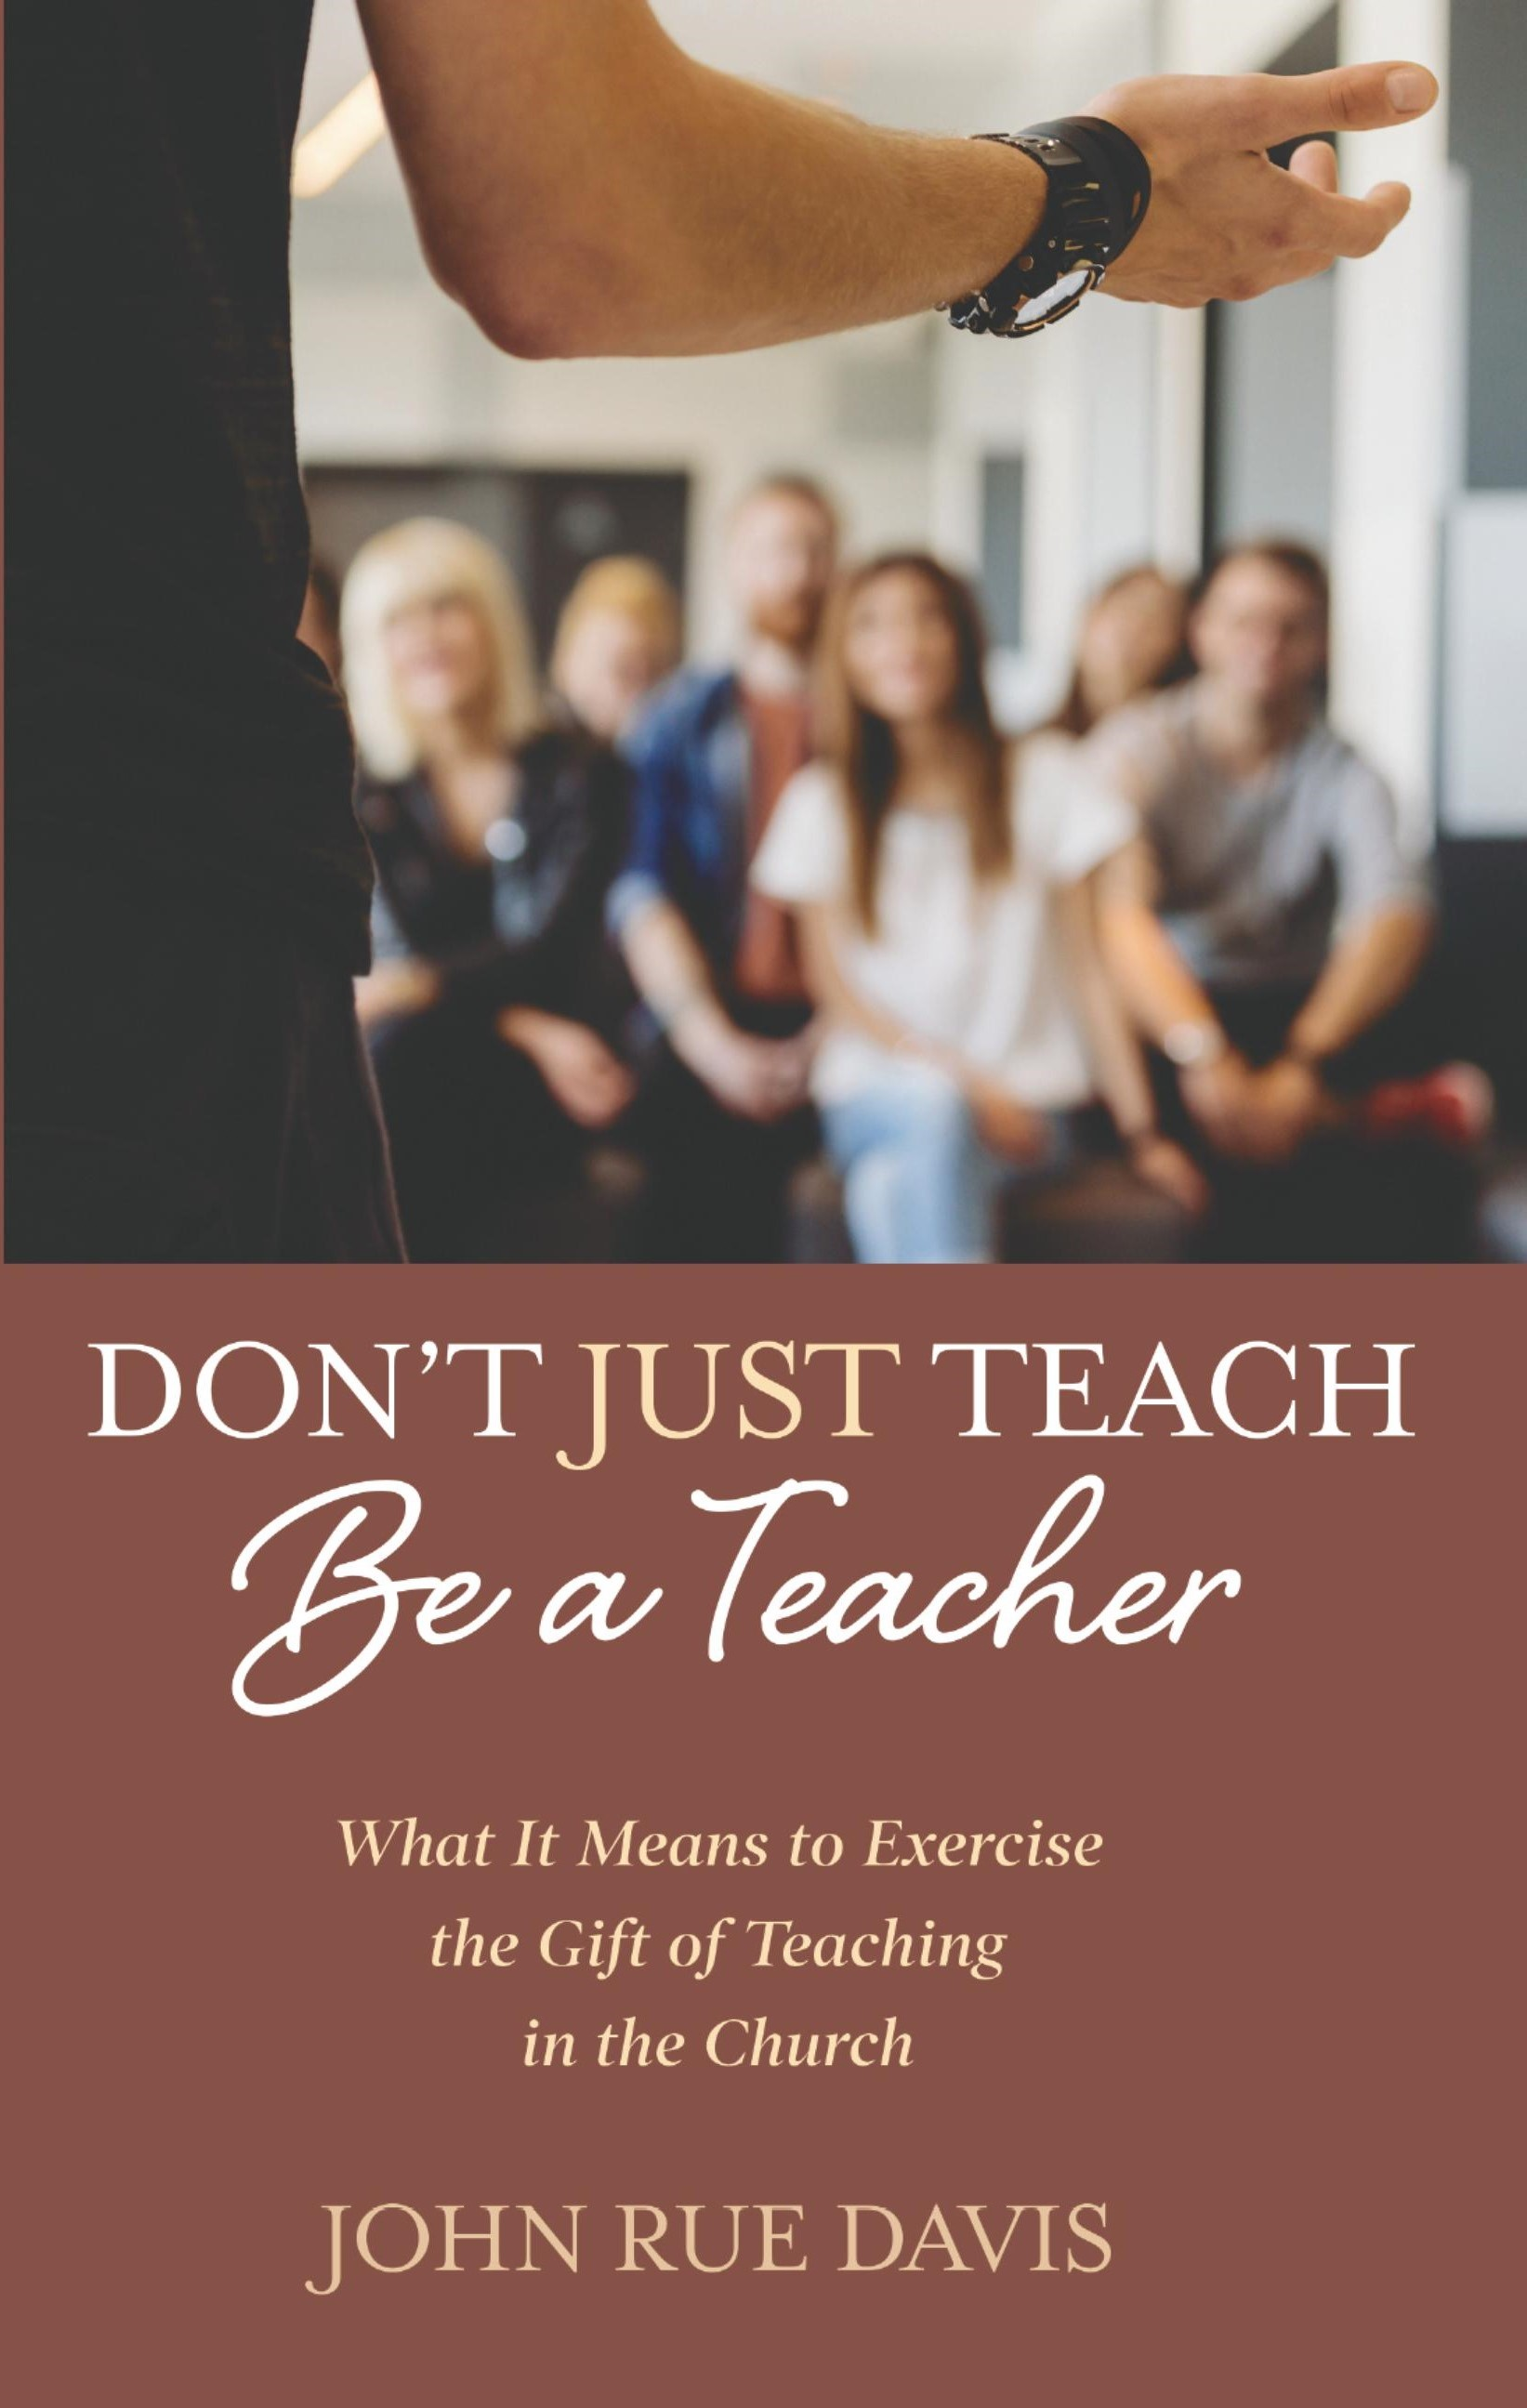 Be a teacher Cover.jpg